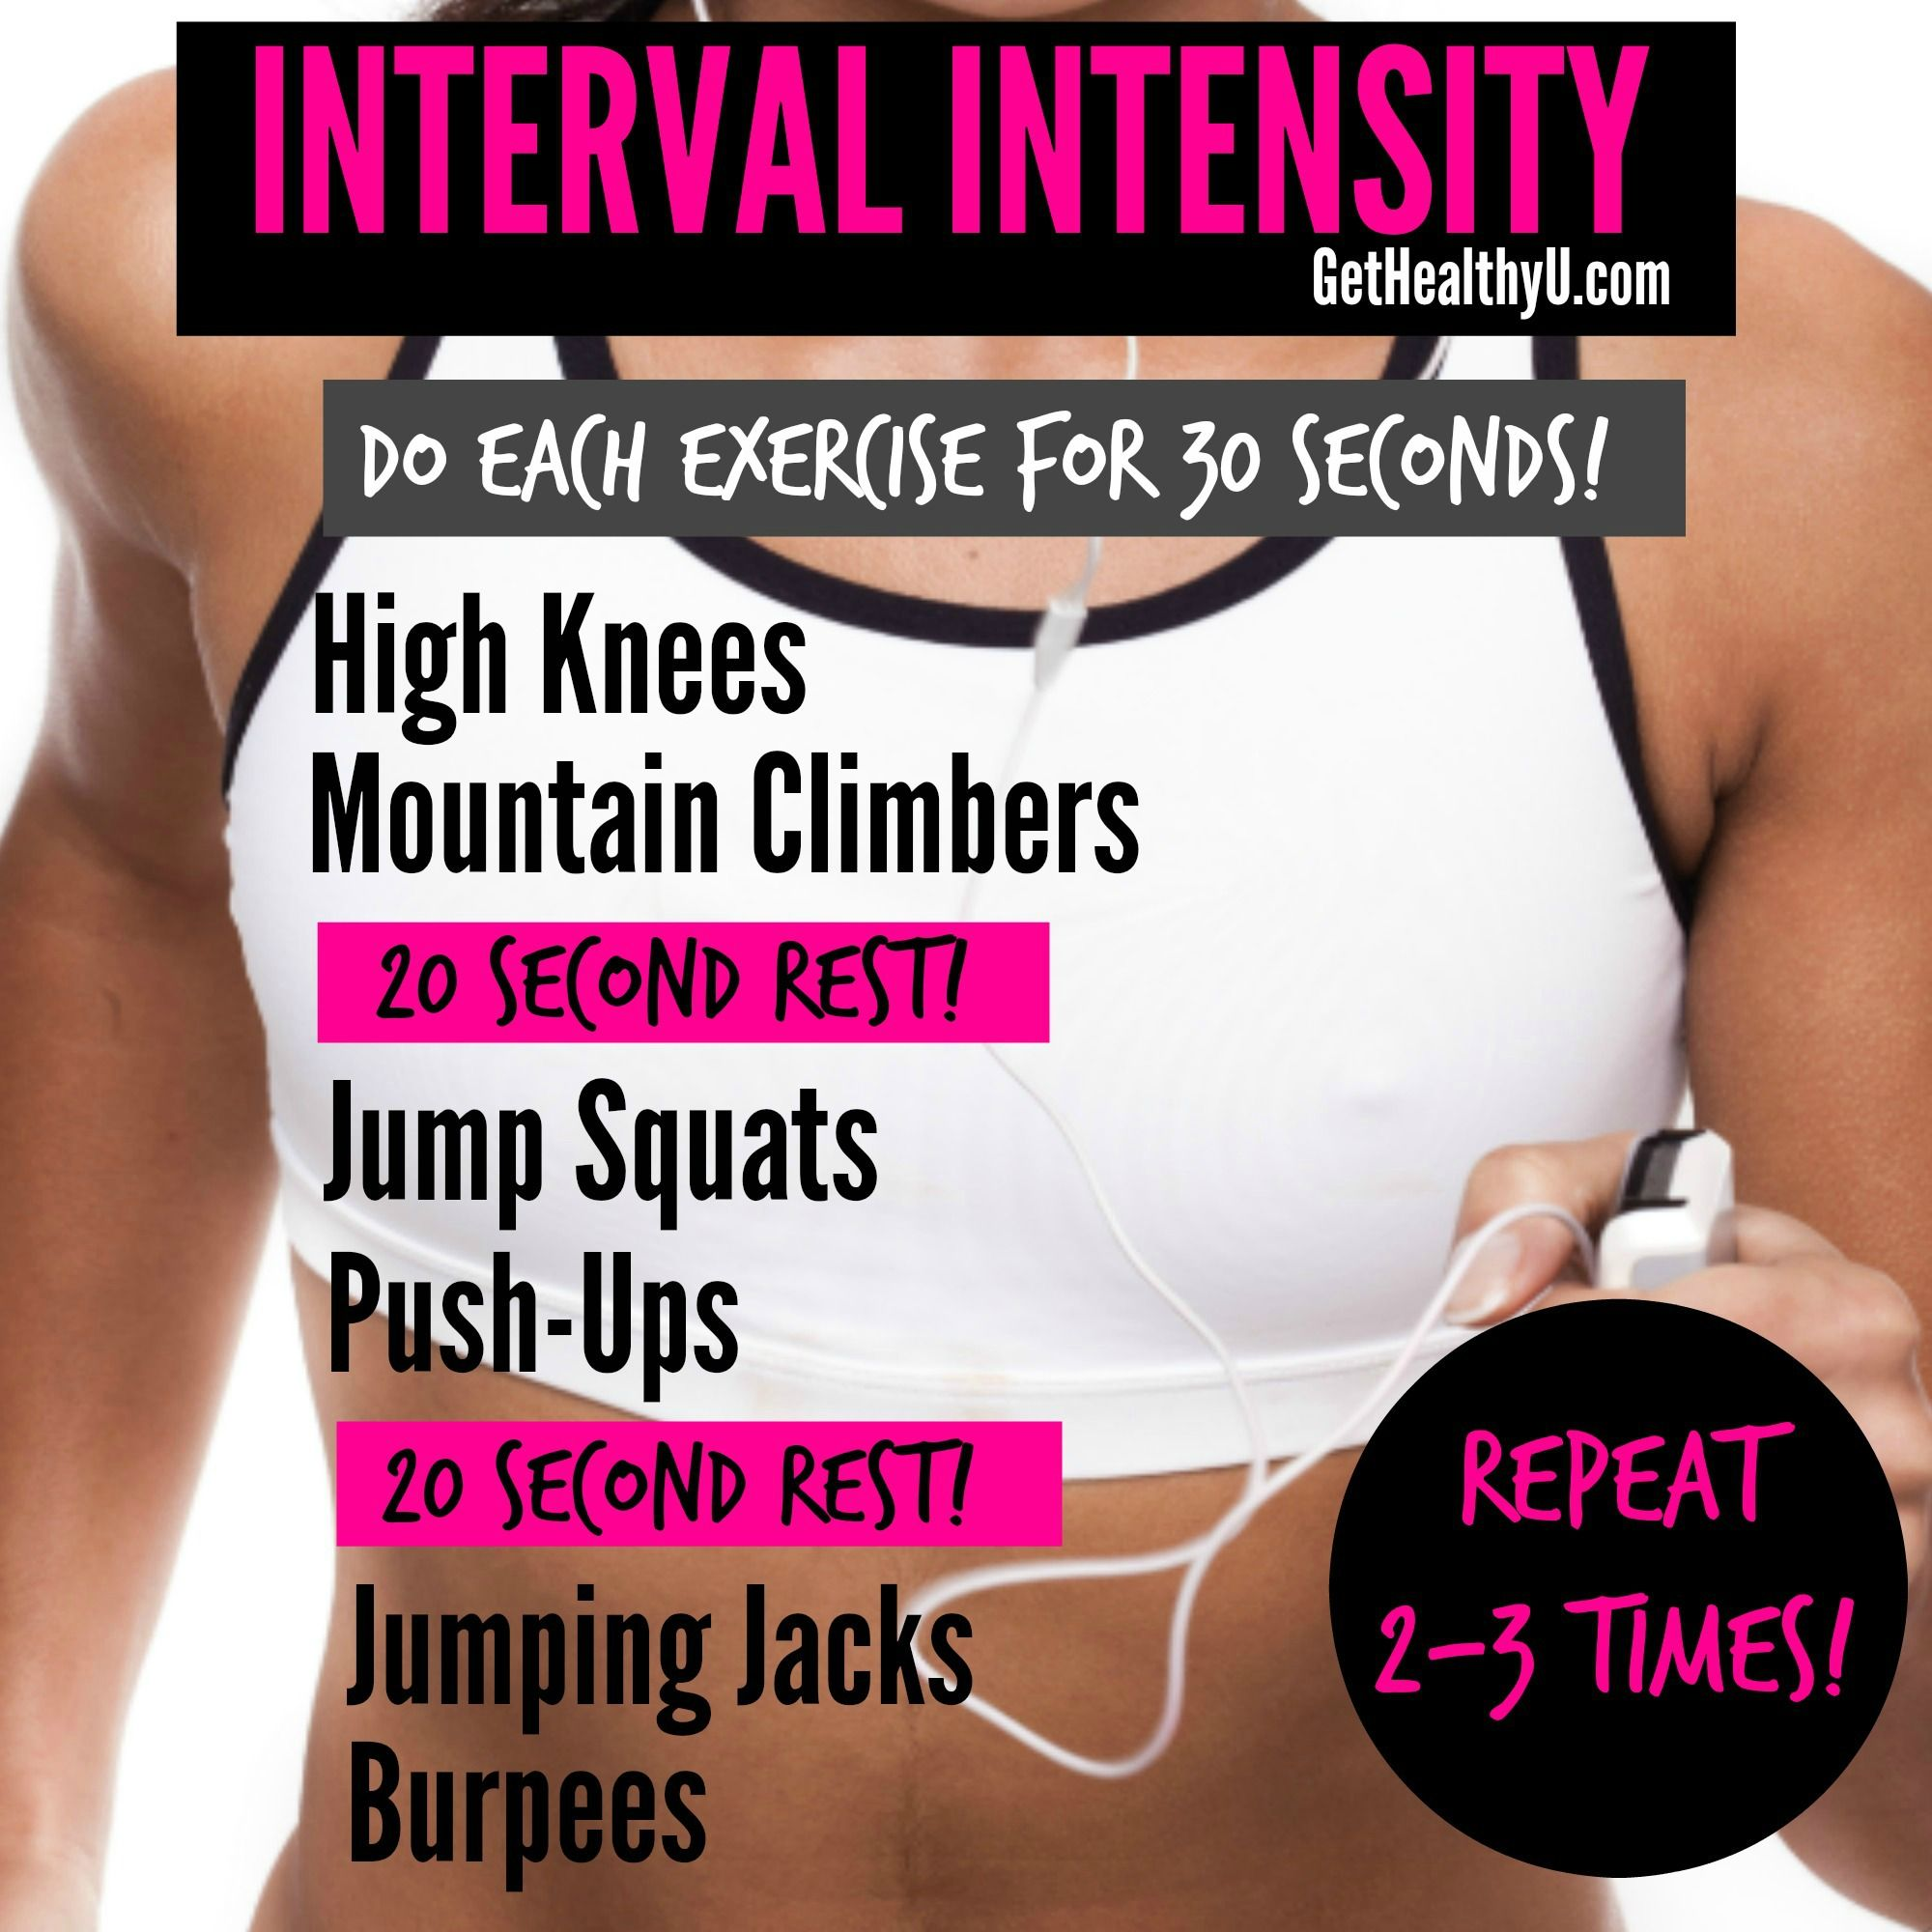 Are you obsessed with interval training?? I AM!! Try this interval workout and you'll be hooked too!